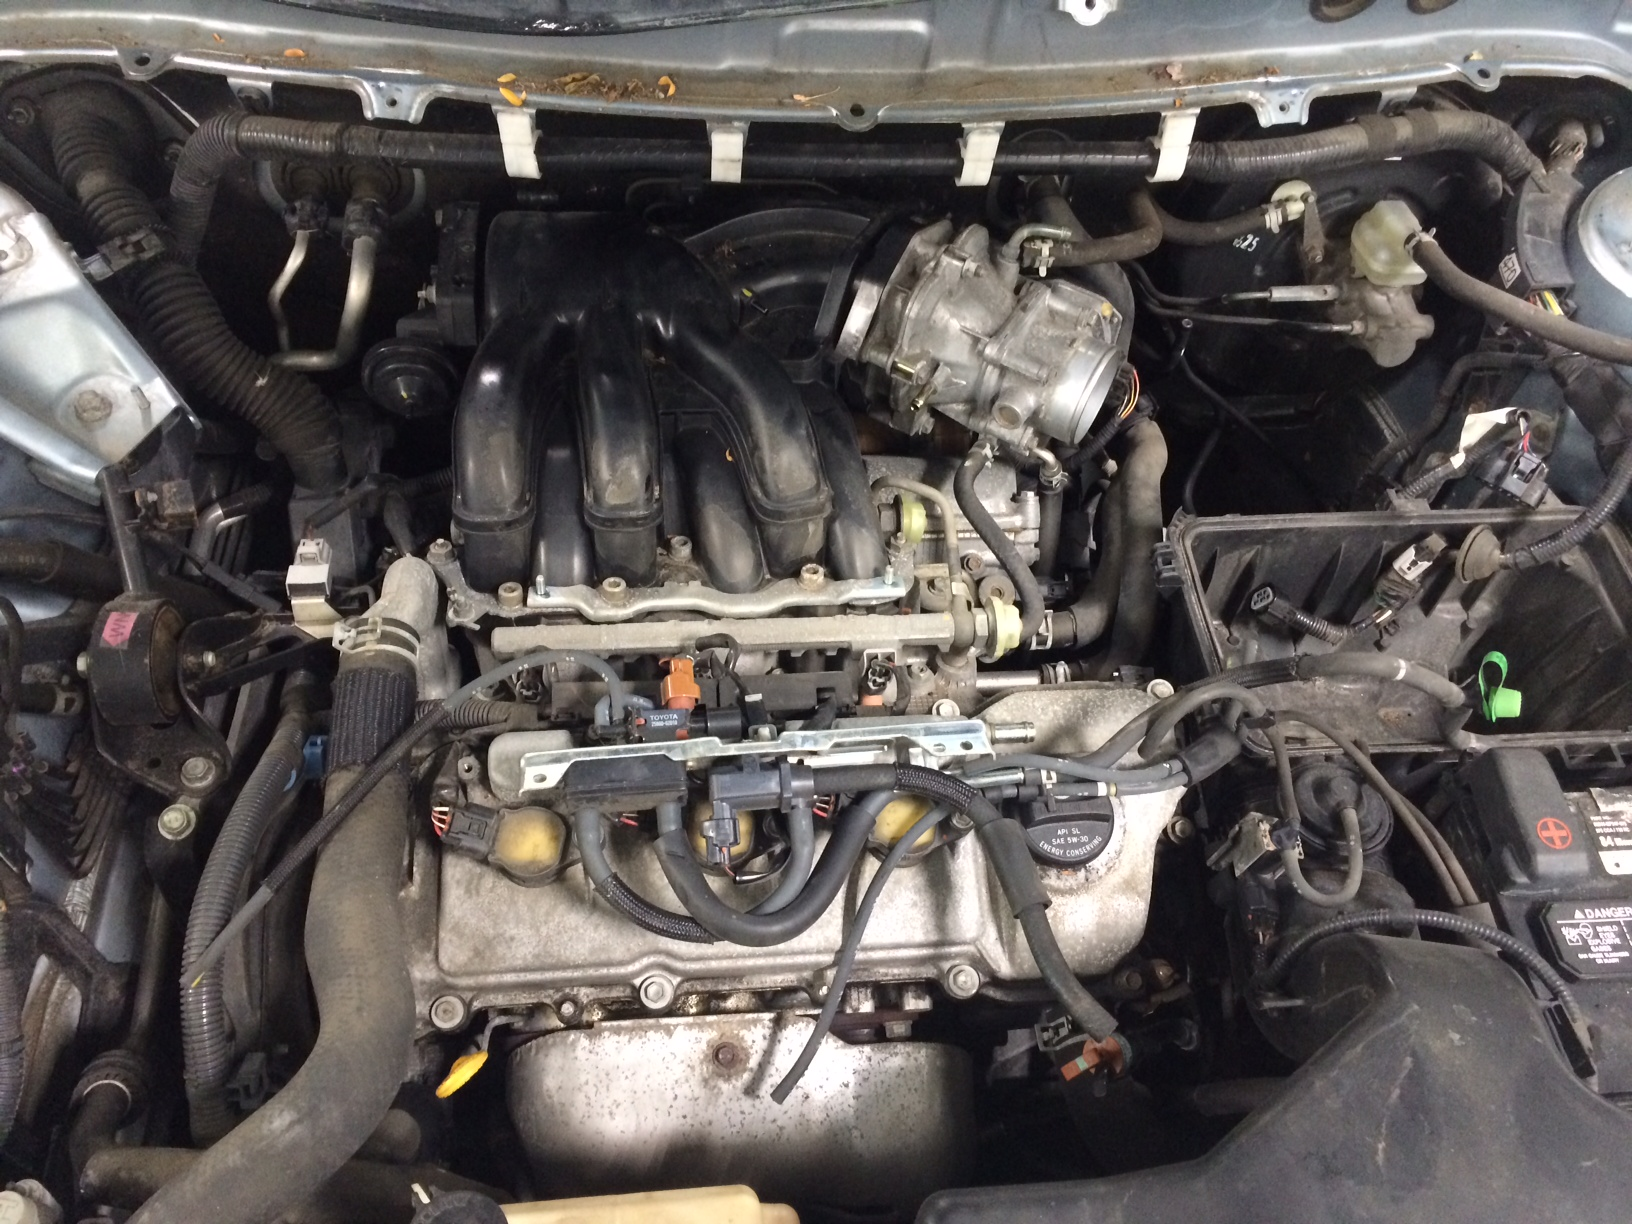 RX330 Valve Cover Gaskets